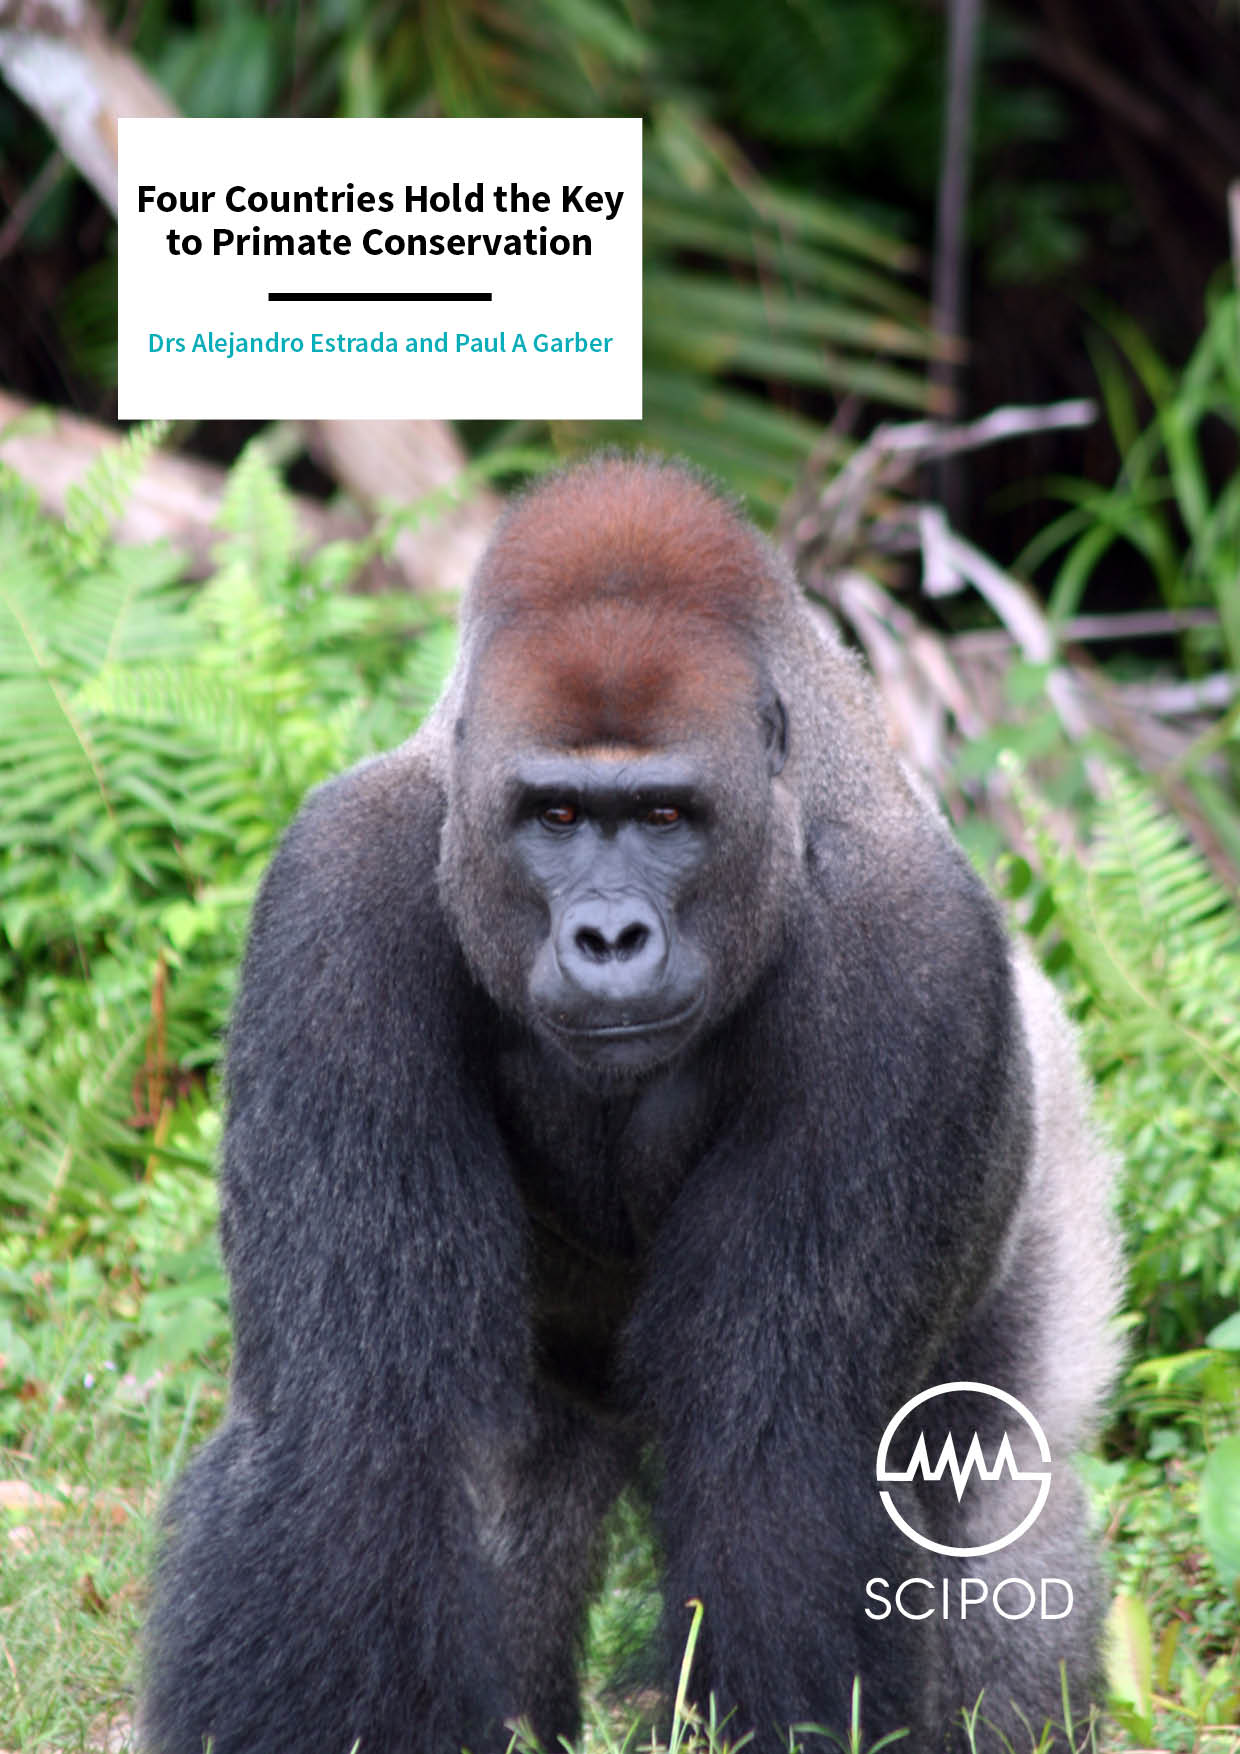 Four Countries Hold the Key to Primate Conservation – Drs Alejandro Estrada and Paul A Garber